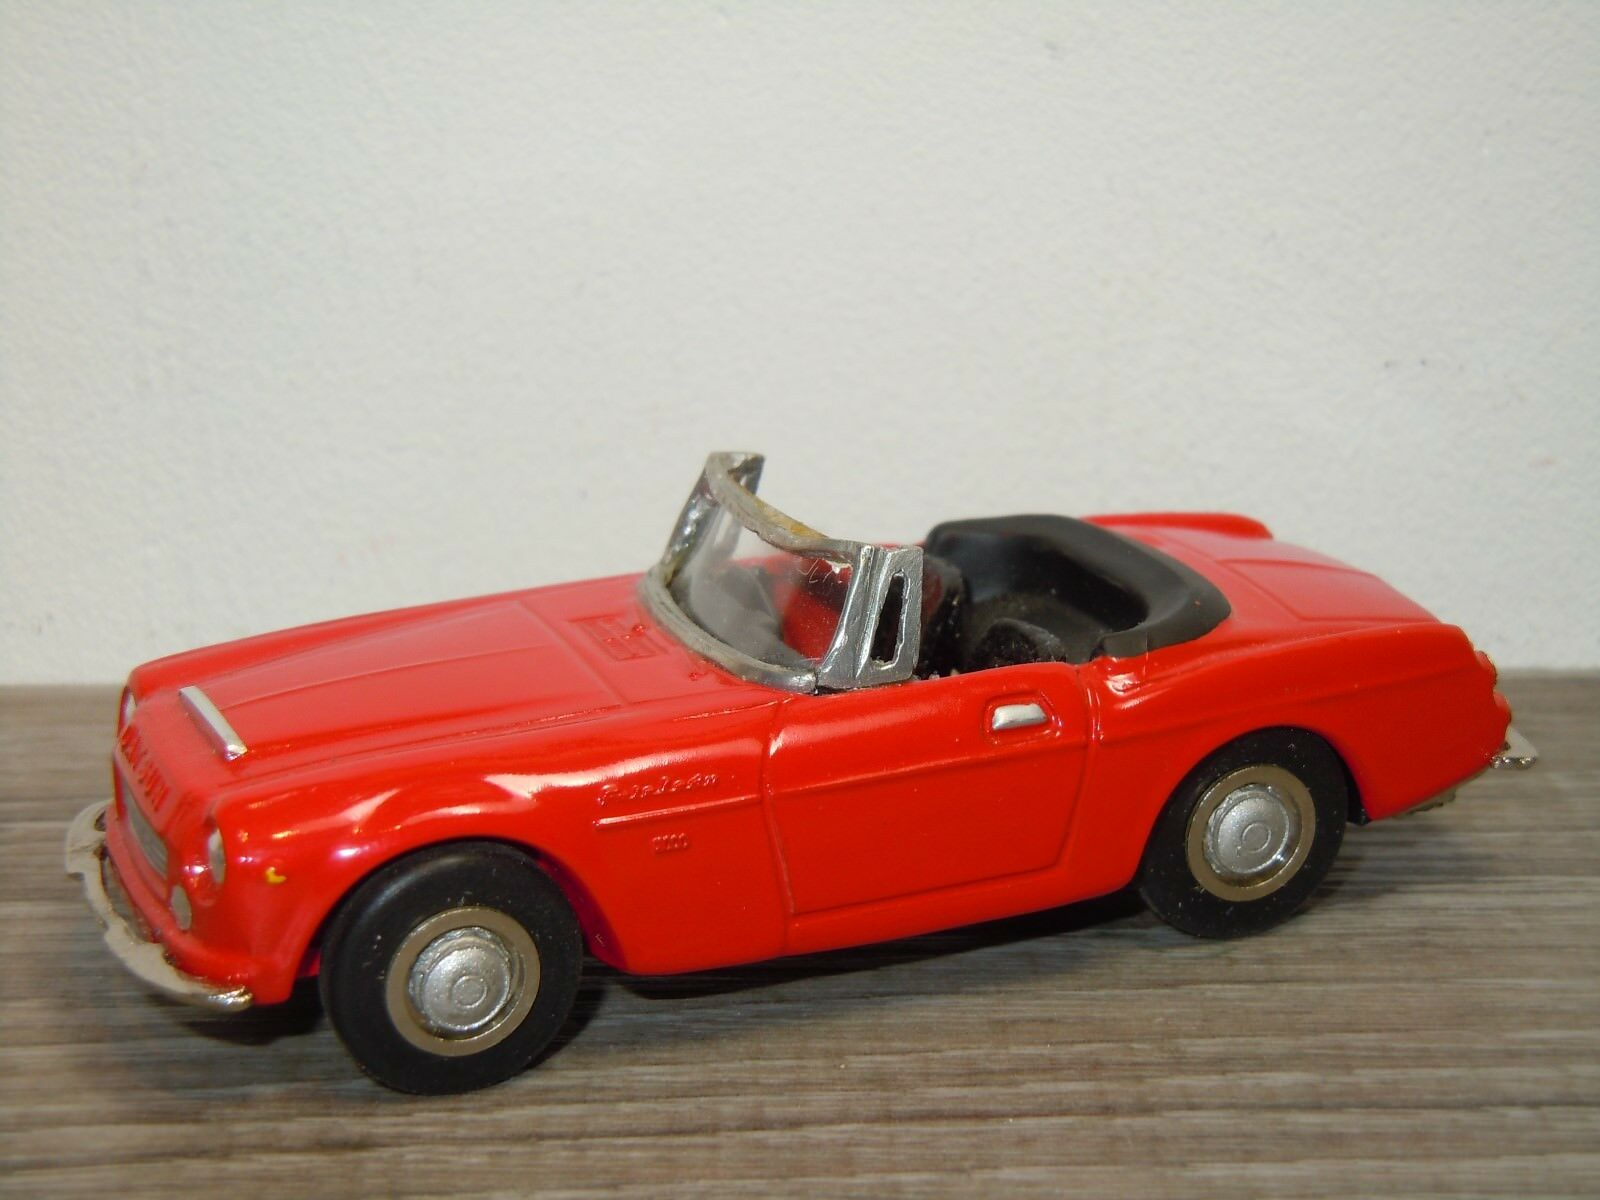 Datsun fairlady 2000 sr311 - diapet sammlung club 1991 in japan 1 43  33675